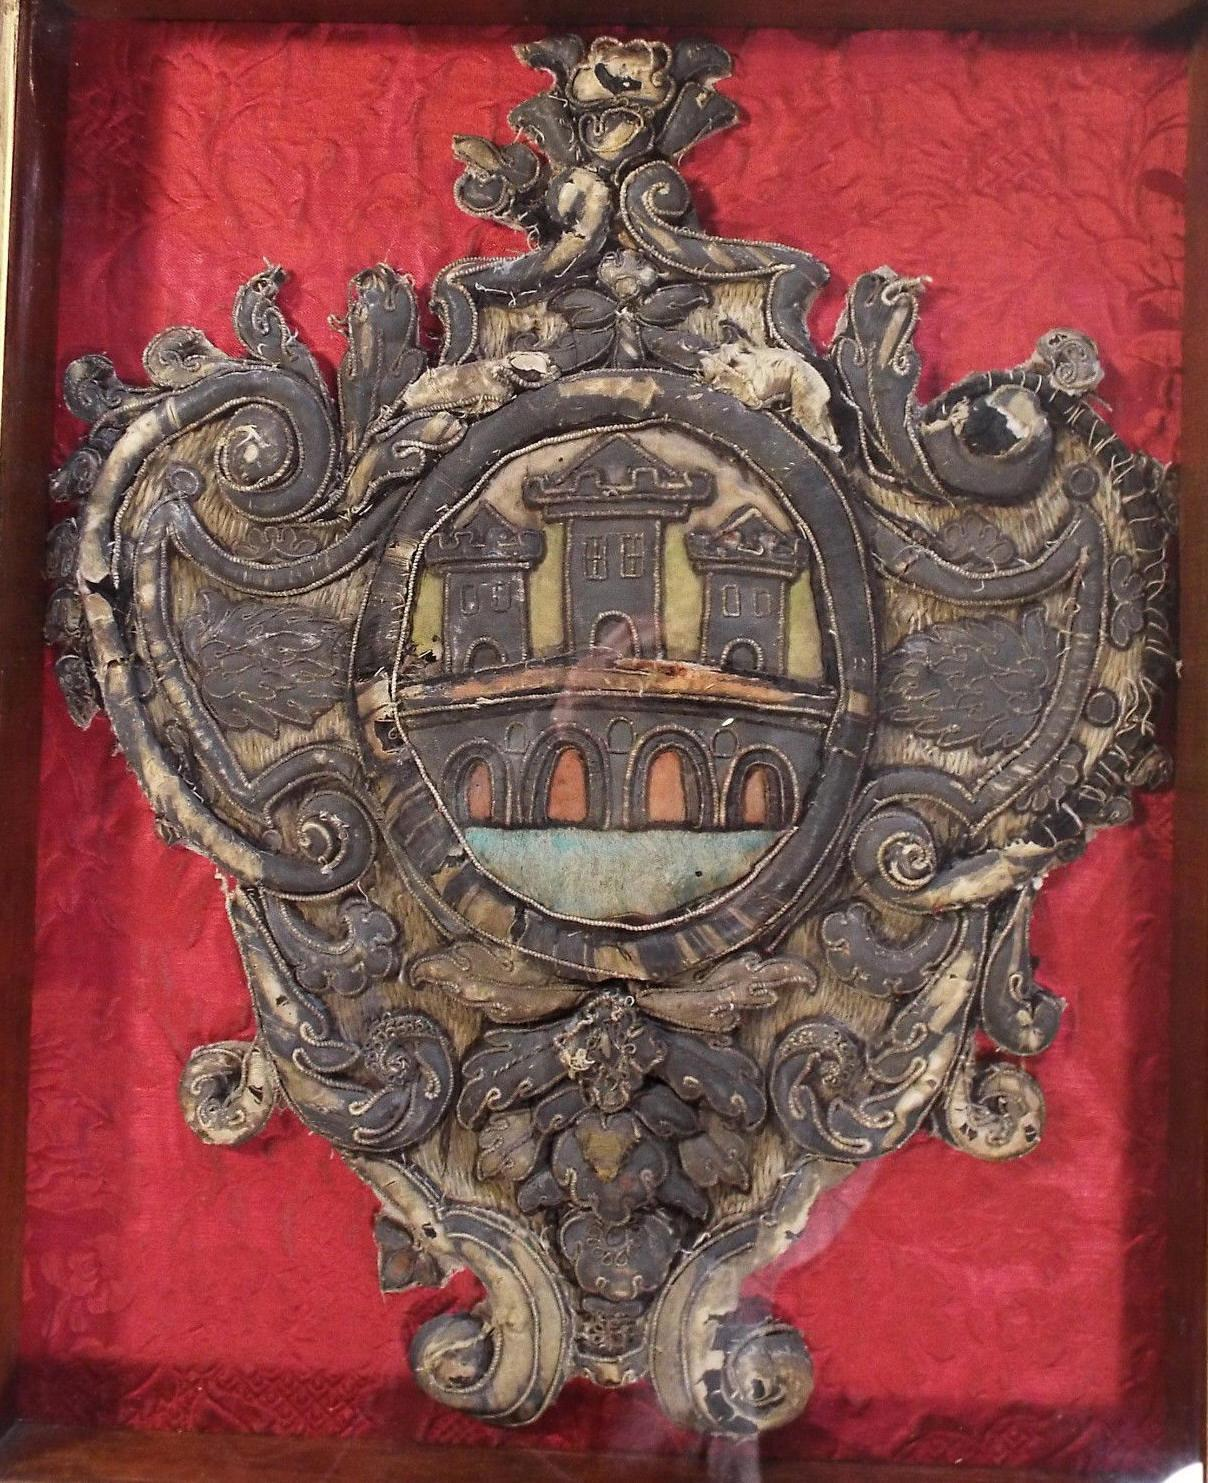 17th Century Italian Baroque Embroidered Stump Work Armorial Coat of Arms